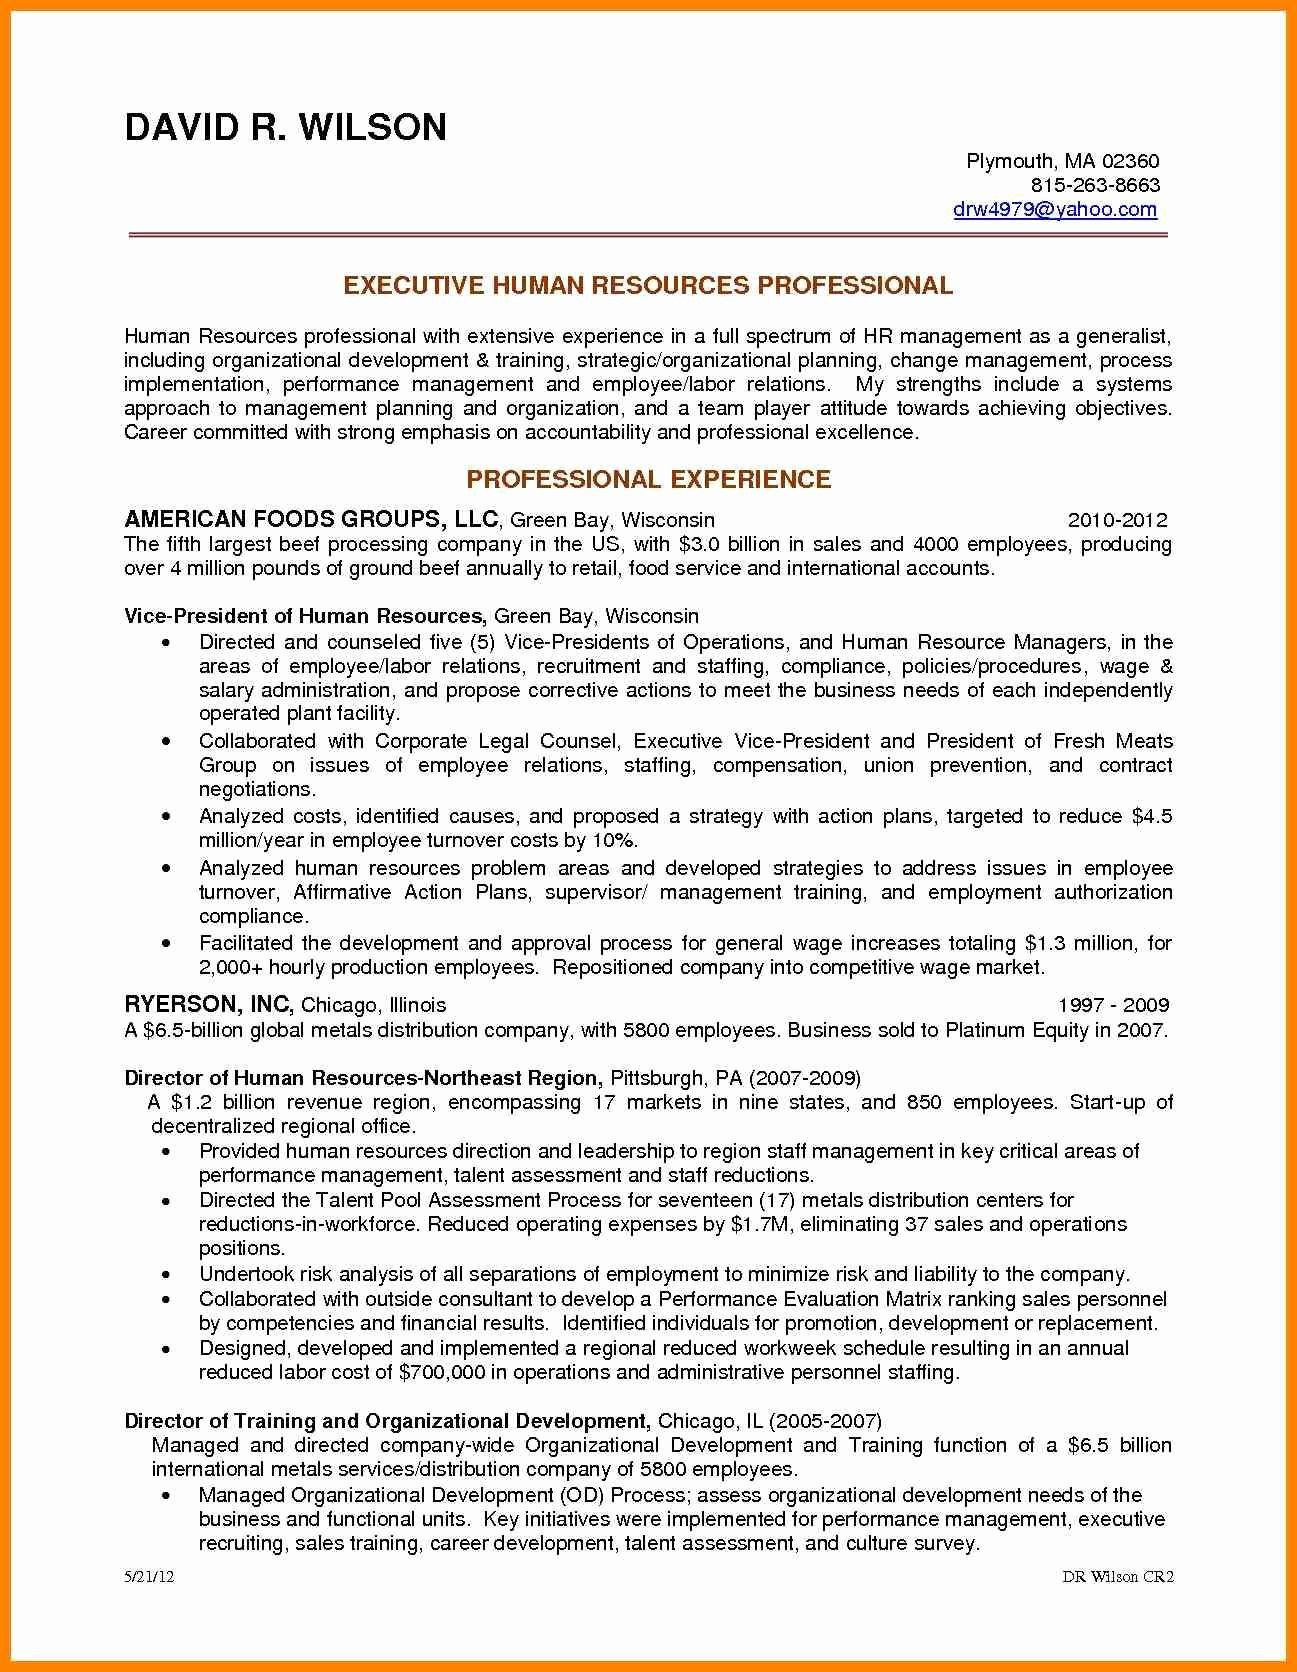 Entry Level Human Resources Resume - Entry Level Human Resources Resume Free Downloads Entry Level Human